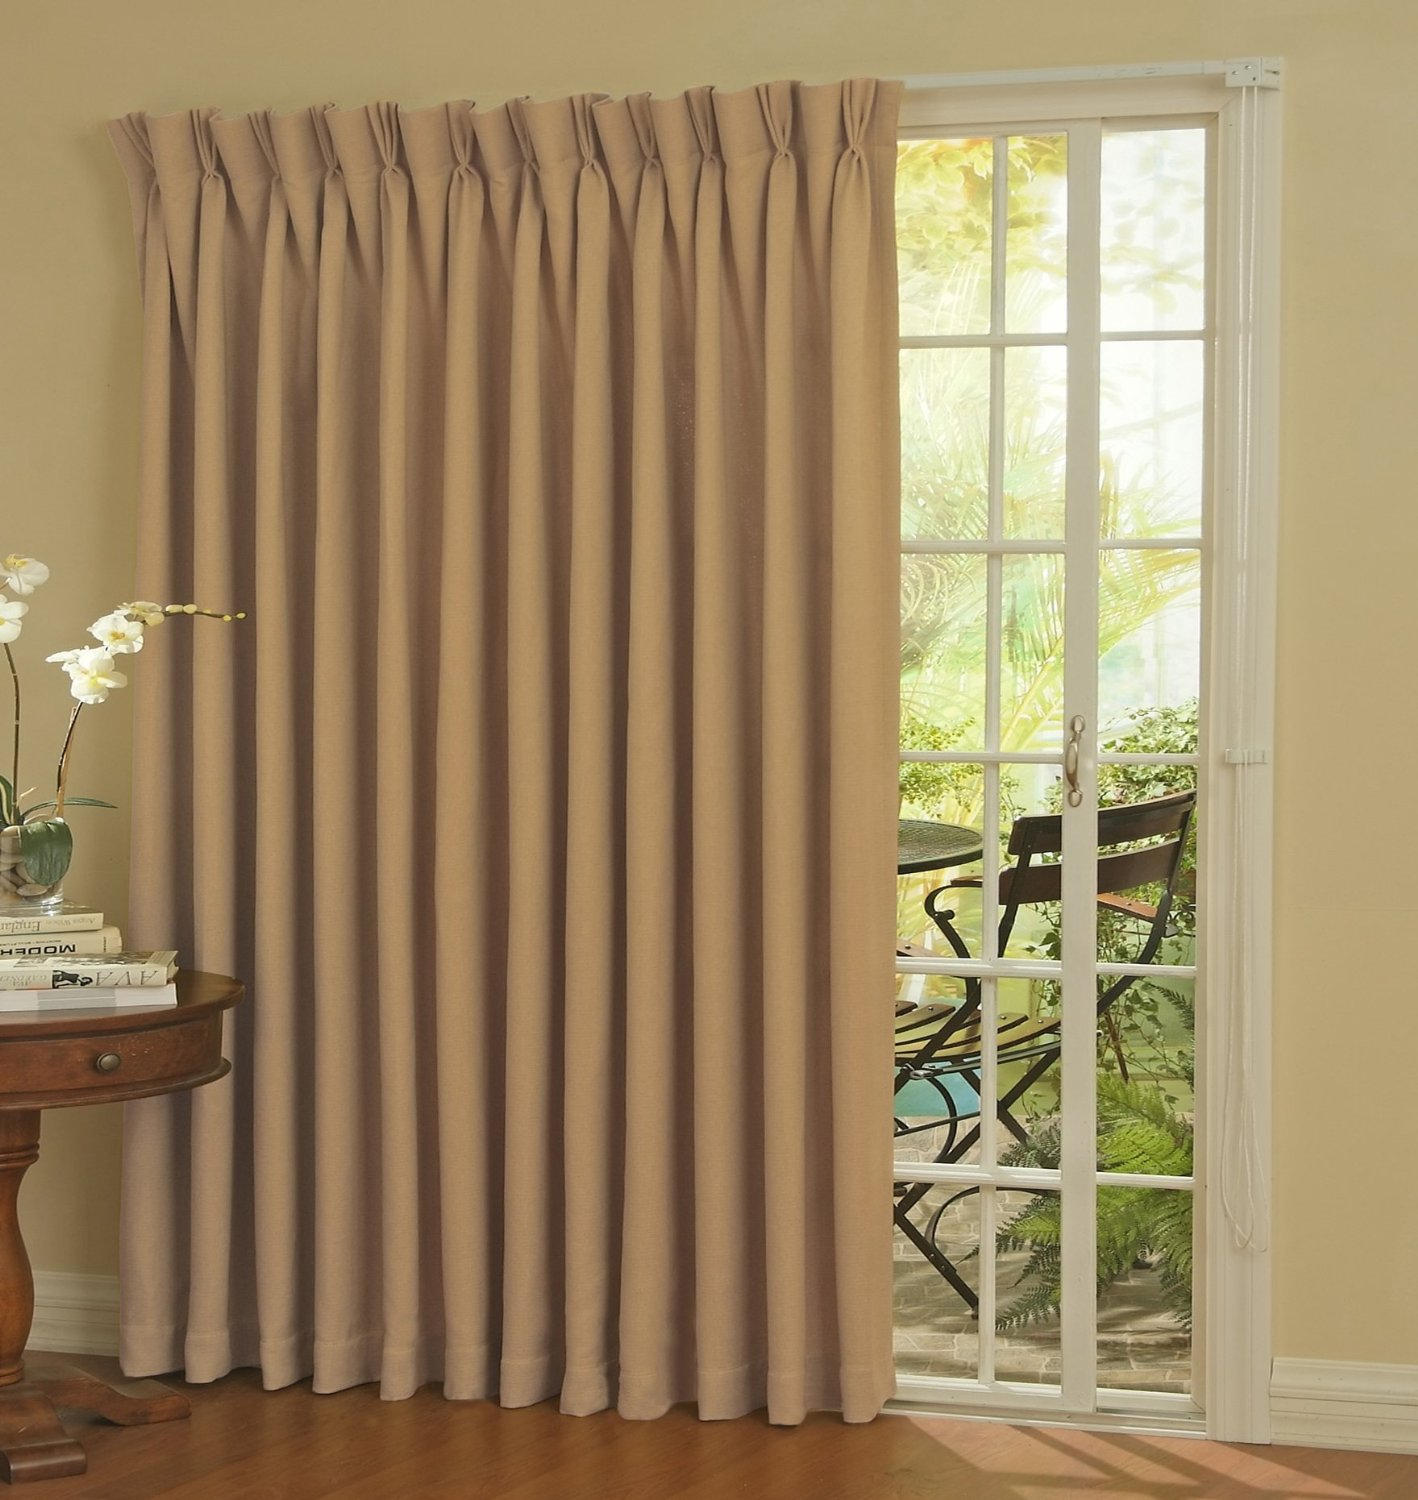 Design Sliding Glass Door Curtains curtains for sliding glass door drapes doors door